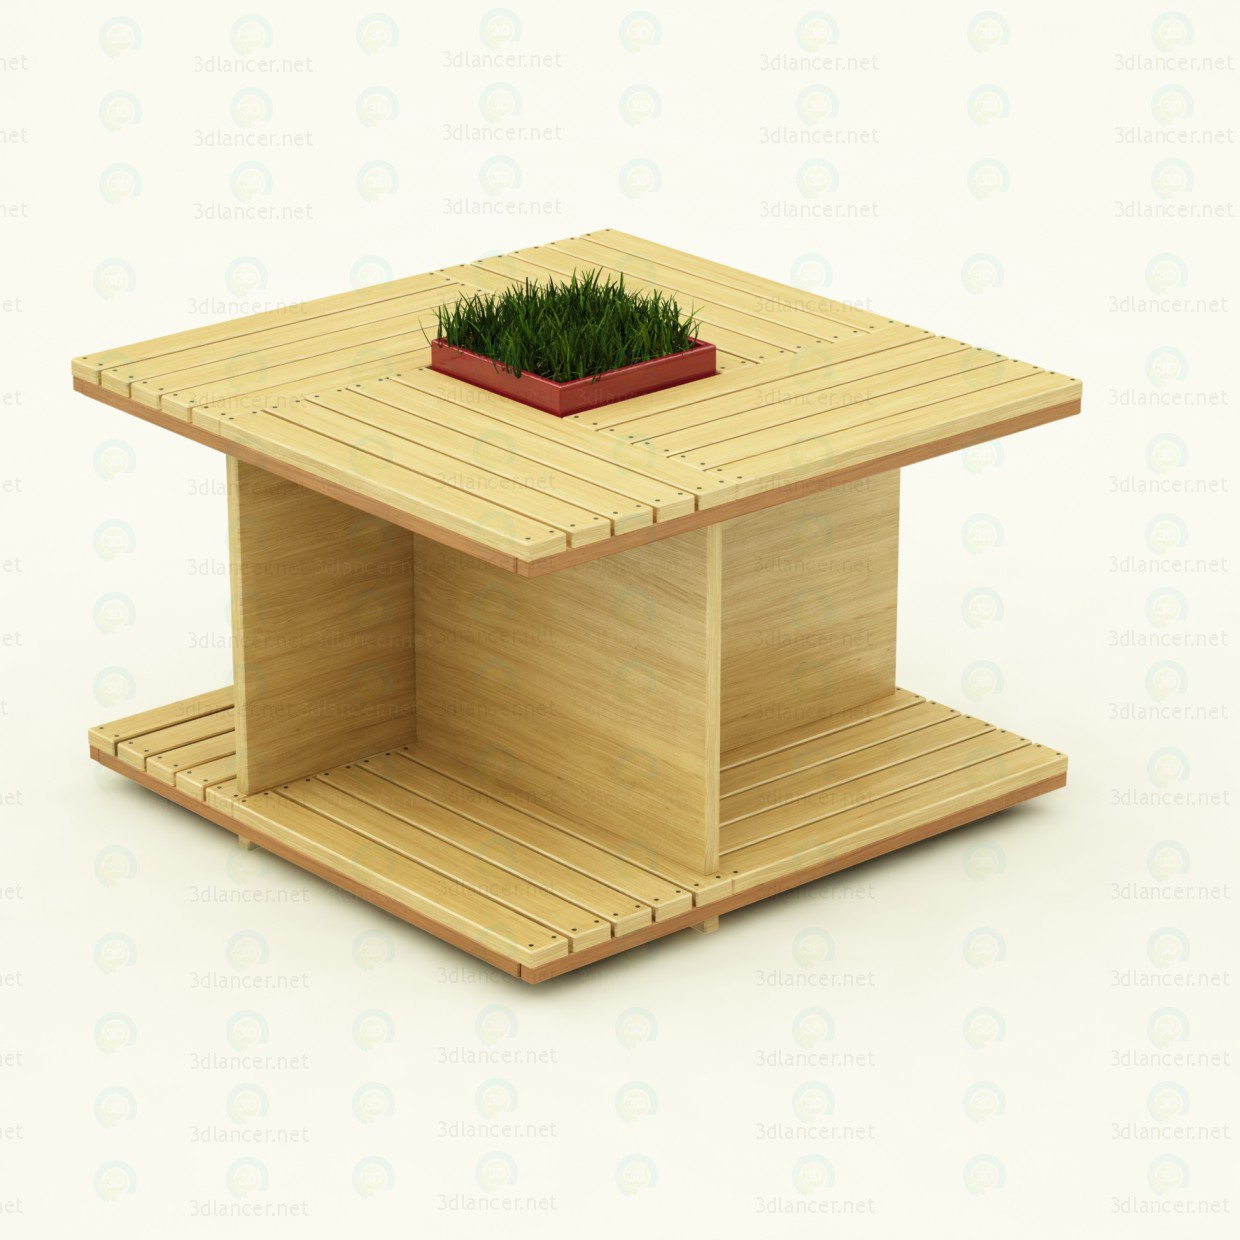 3d modeling Wooden table for the garden model free download